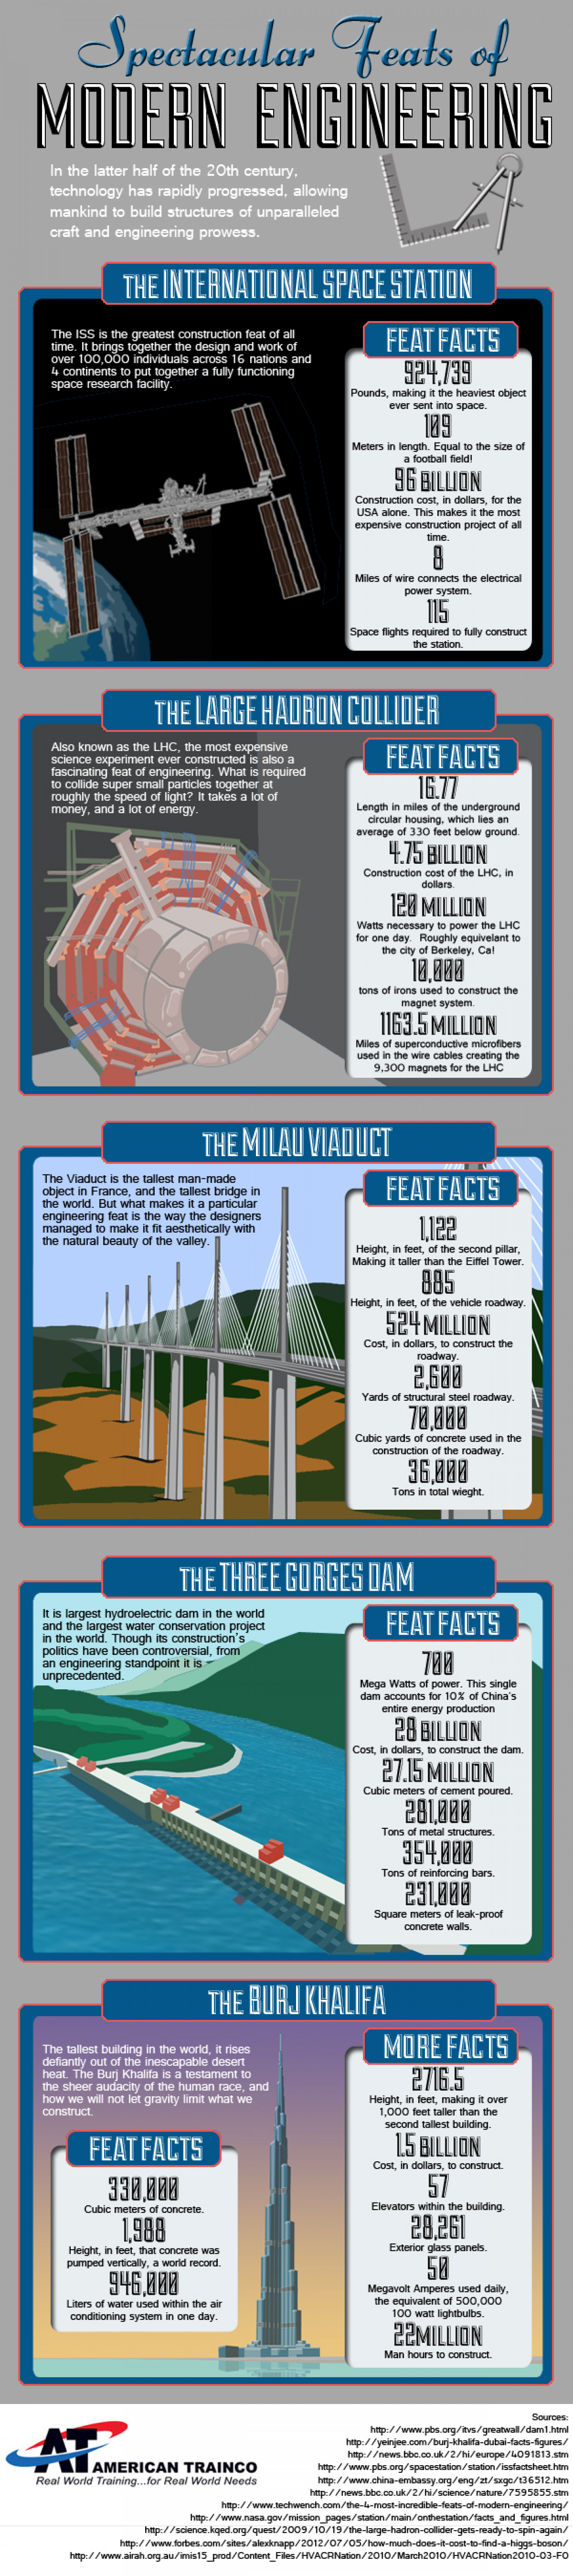 Spectacular Feats of Modern Engineering Infographic